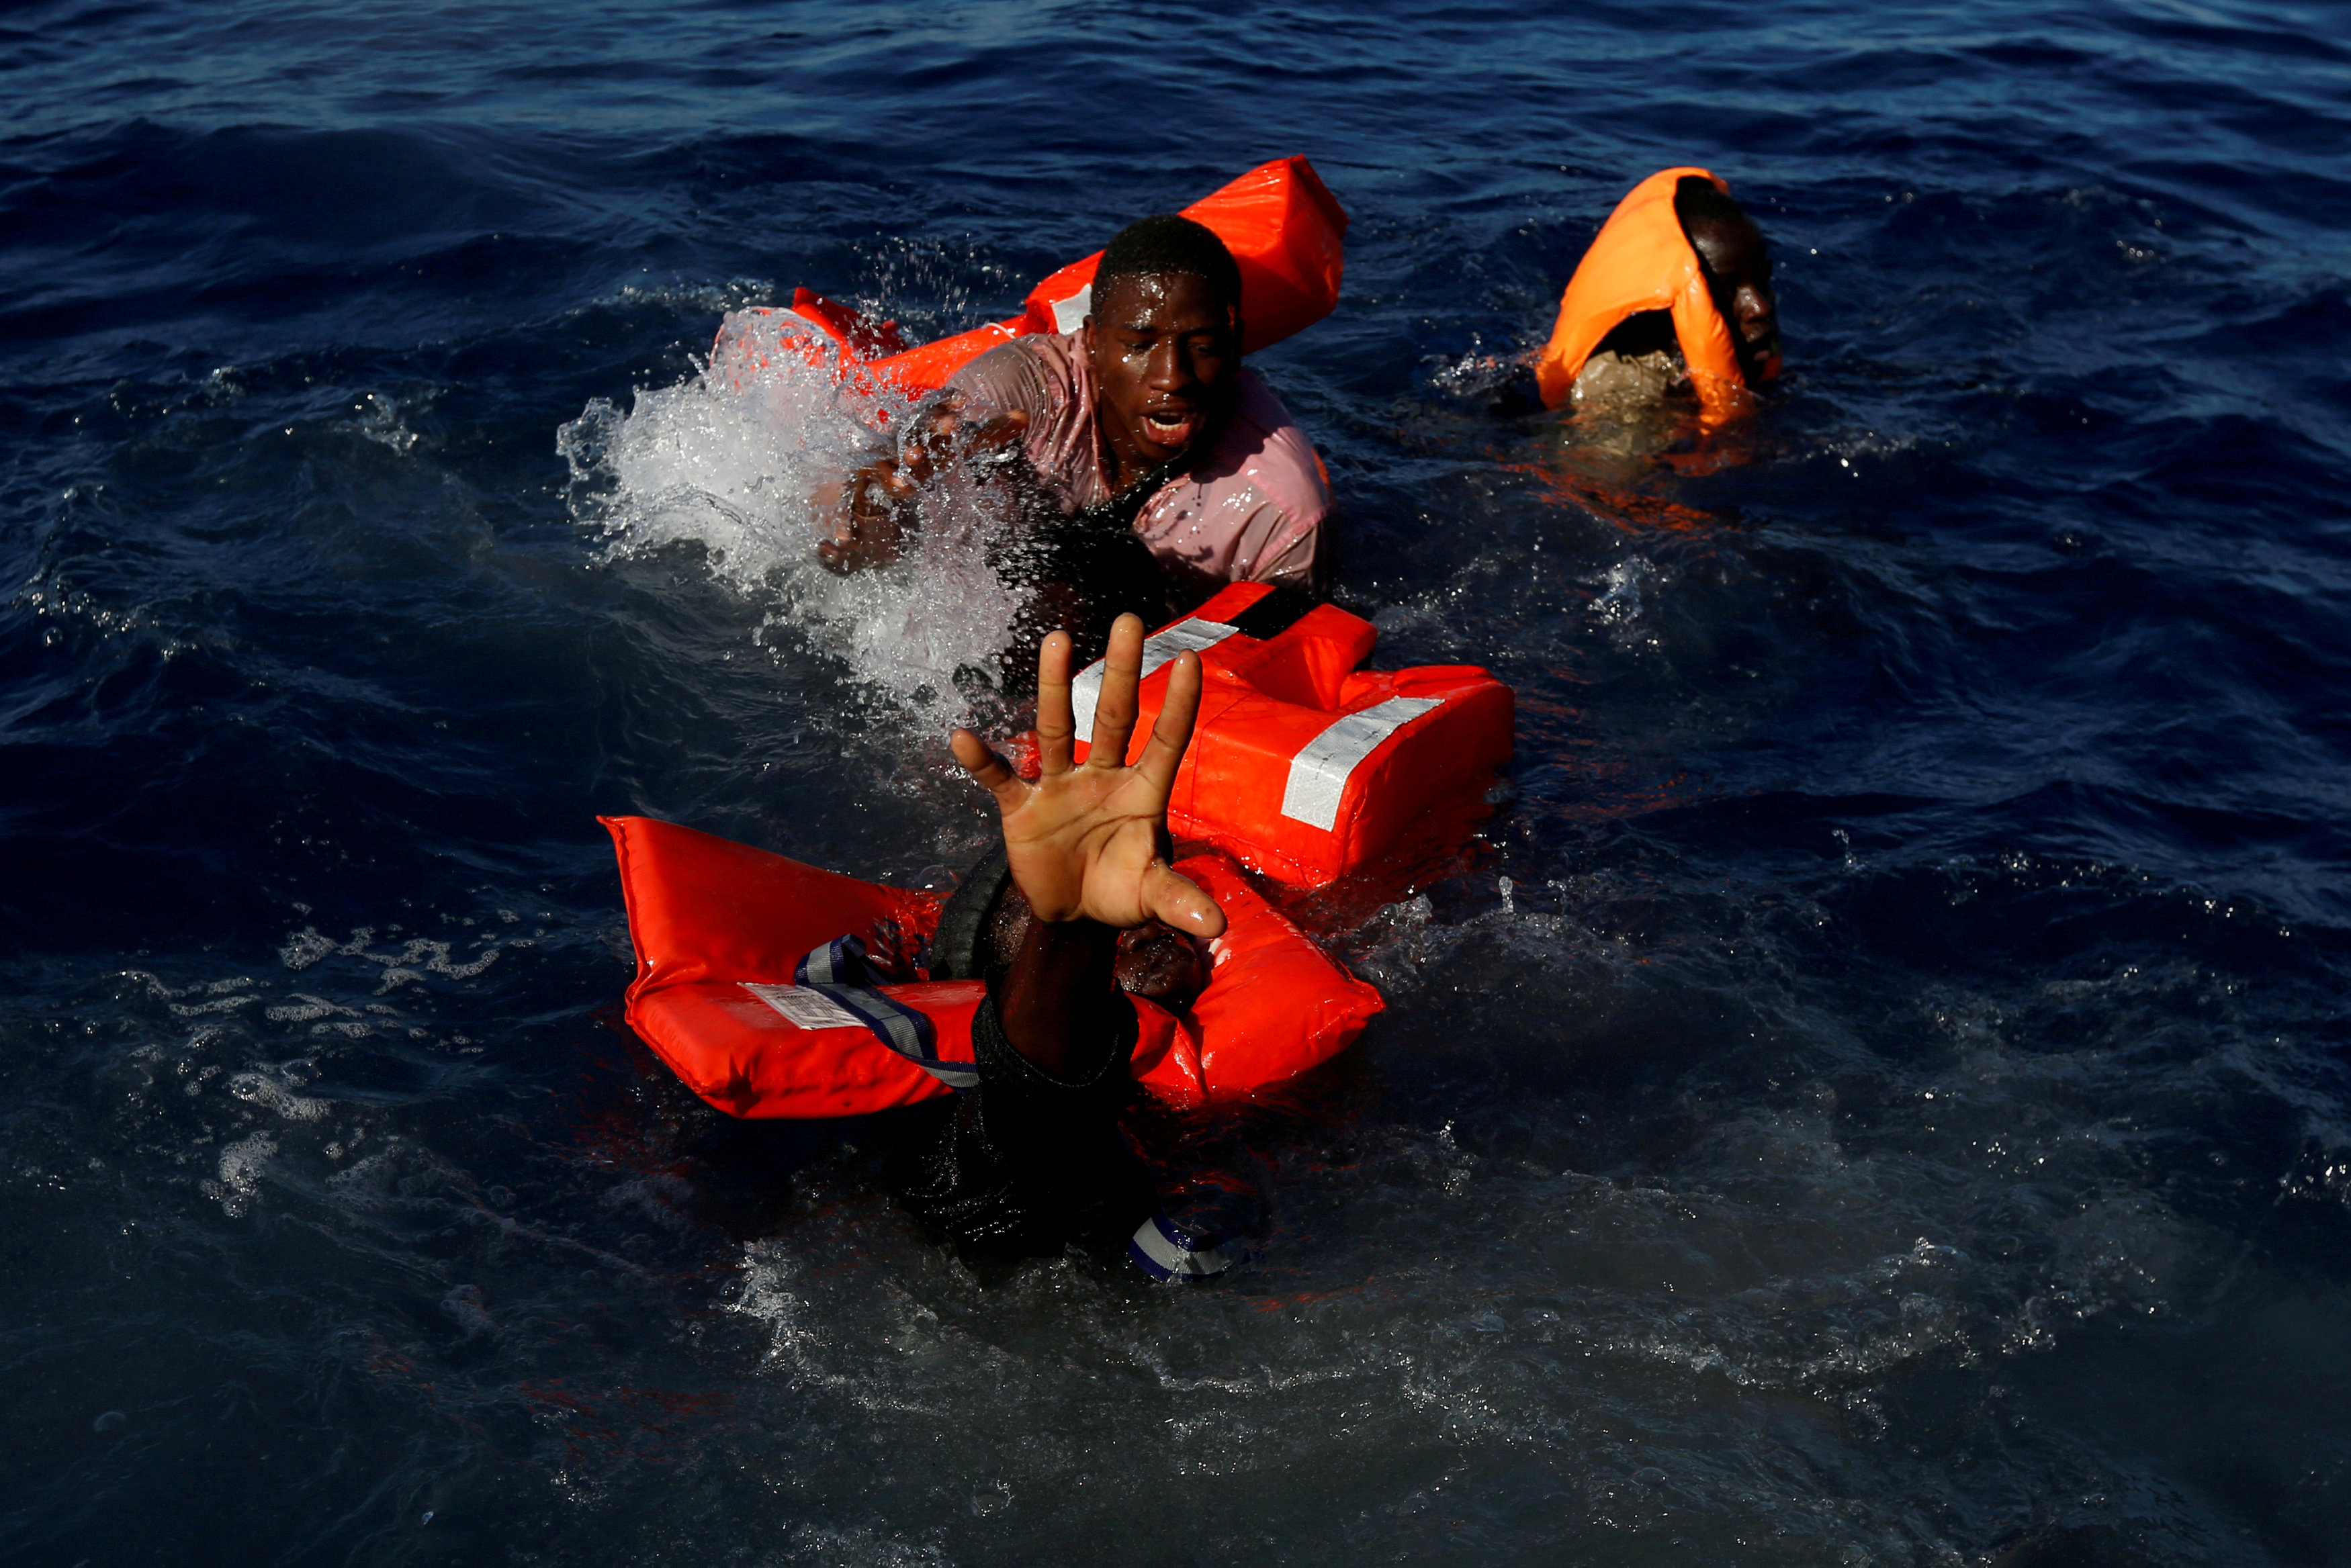 Europe accused of 'complicity' in abuse of Libya migrants